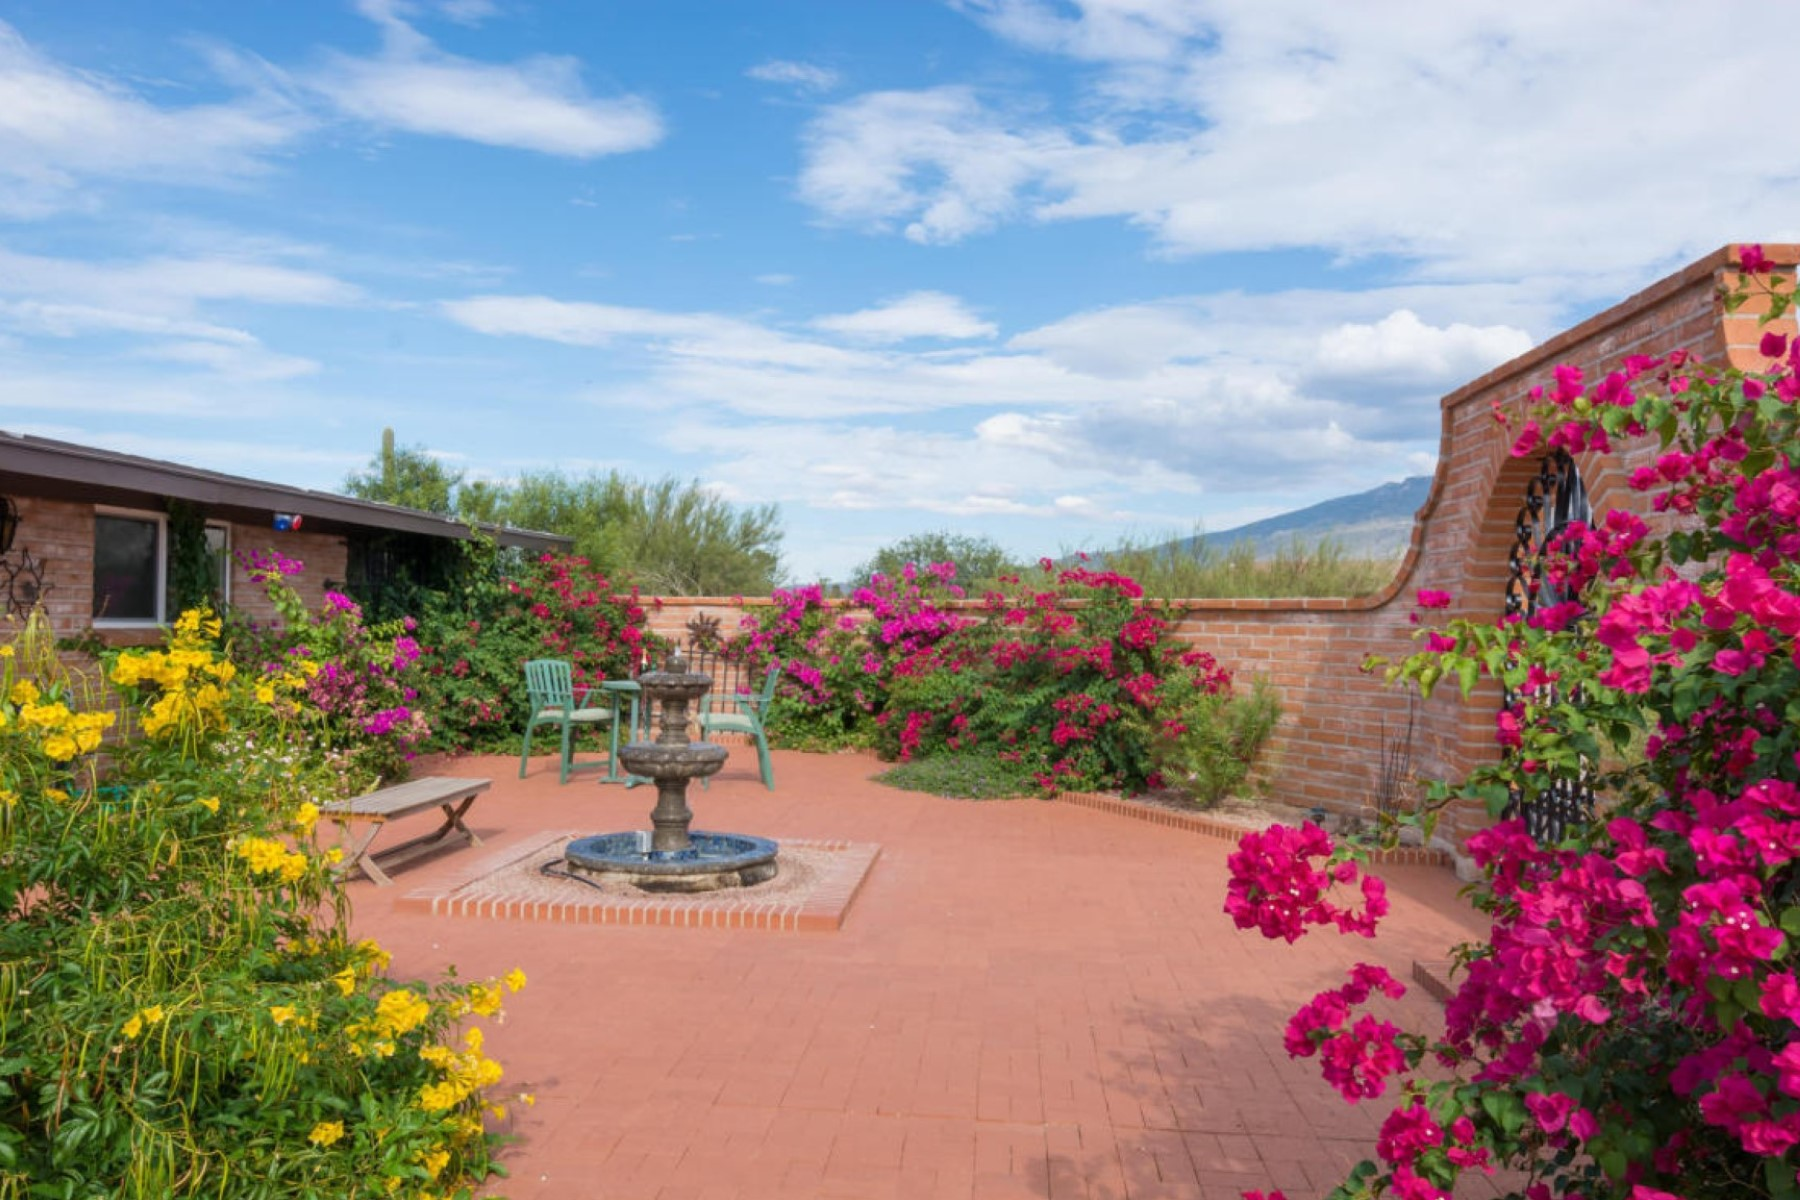 Vivienda unifamiliar por un Venta en Charming Updated Southwest Adobe 3.68 Acre Hilltop Horse Property 11121 E Escalante Rd Tucson, Arizona 85730 Estados Unidos